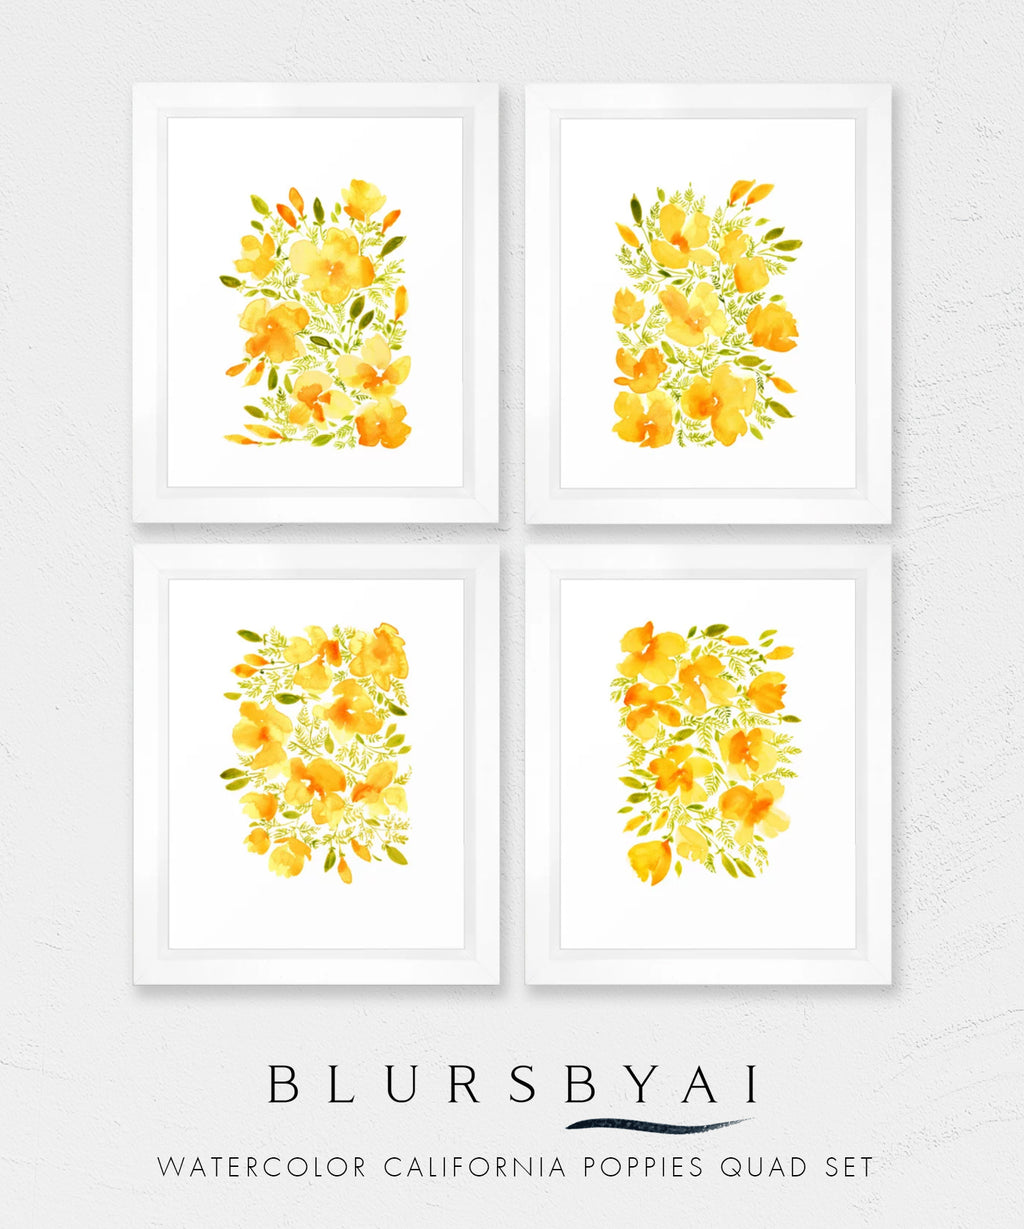 Set of four - Printable watercolor illustrations of California poppies